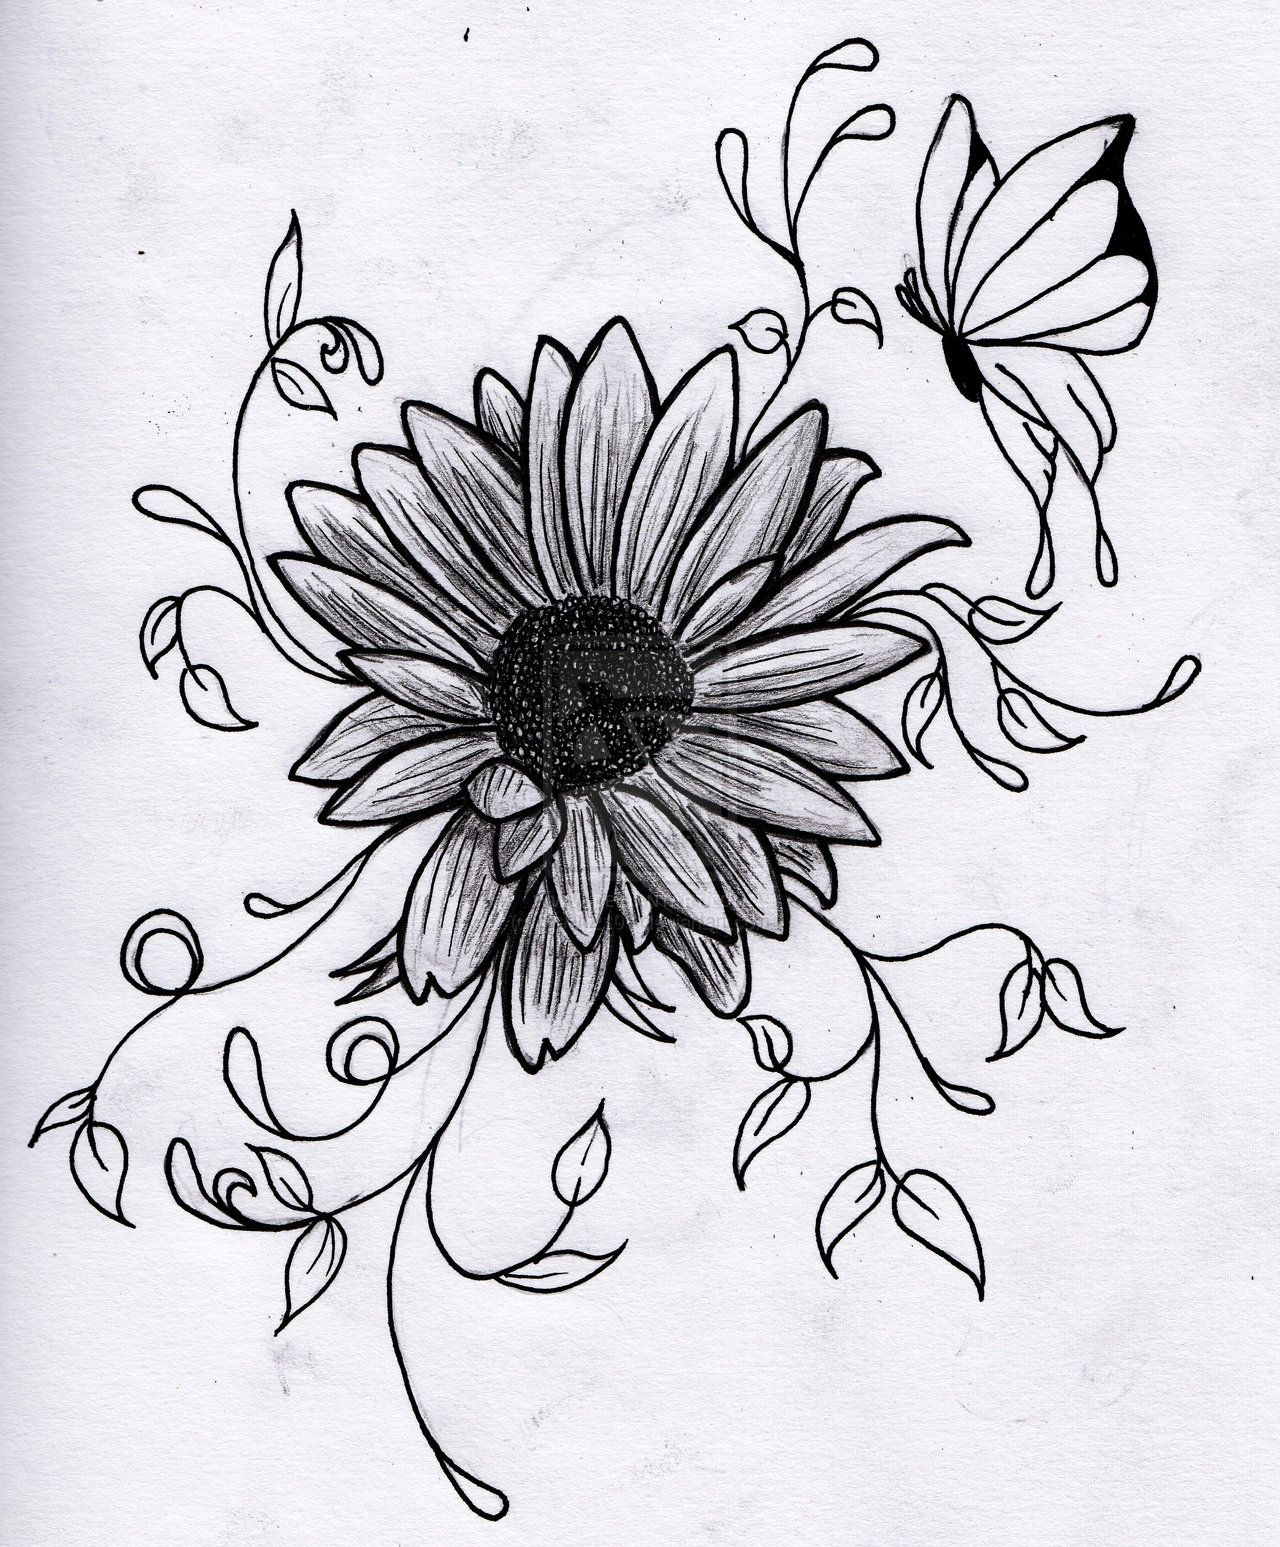 flower drawings - Google Search | Tattoo ideas | Pinterest ...